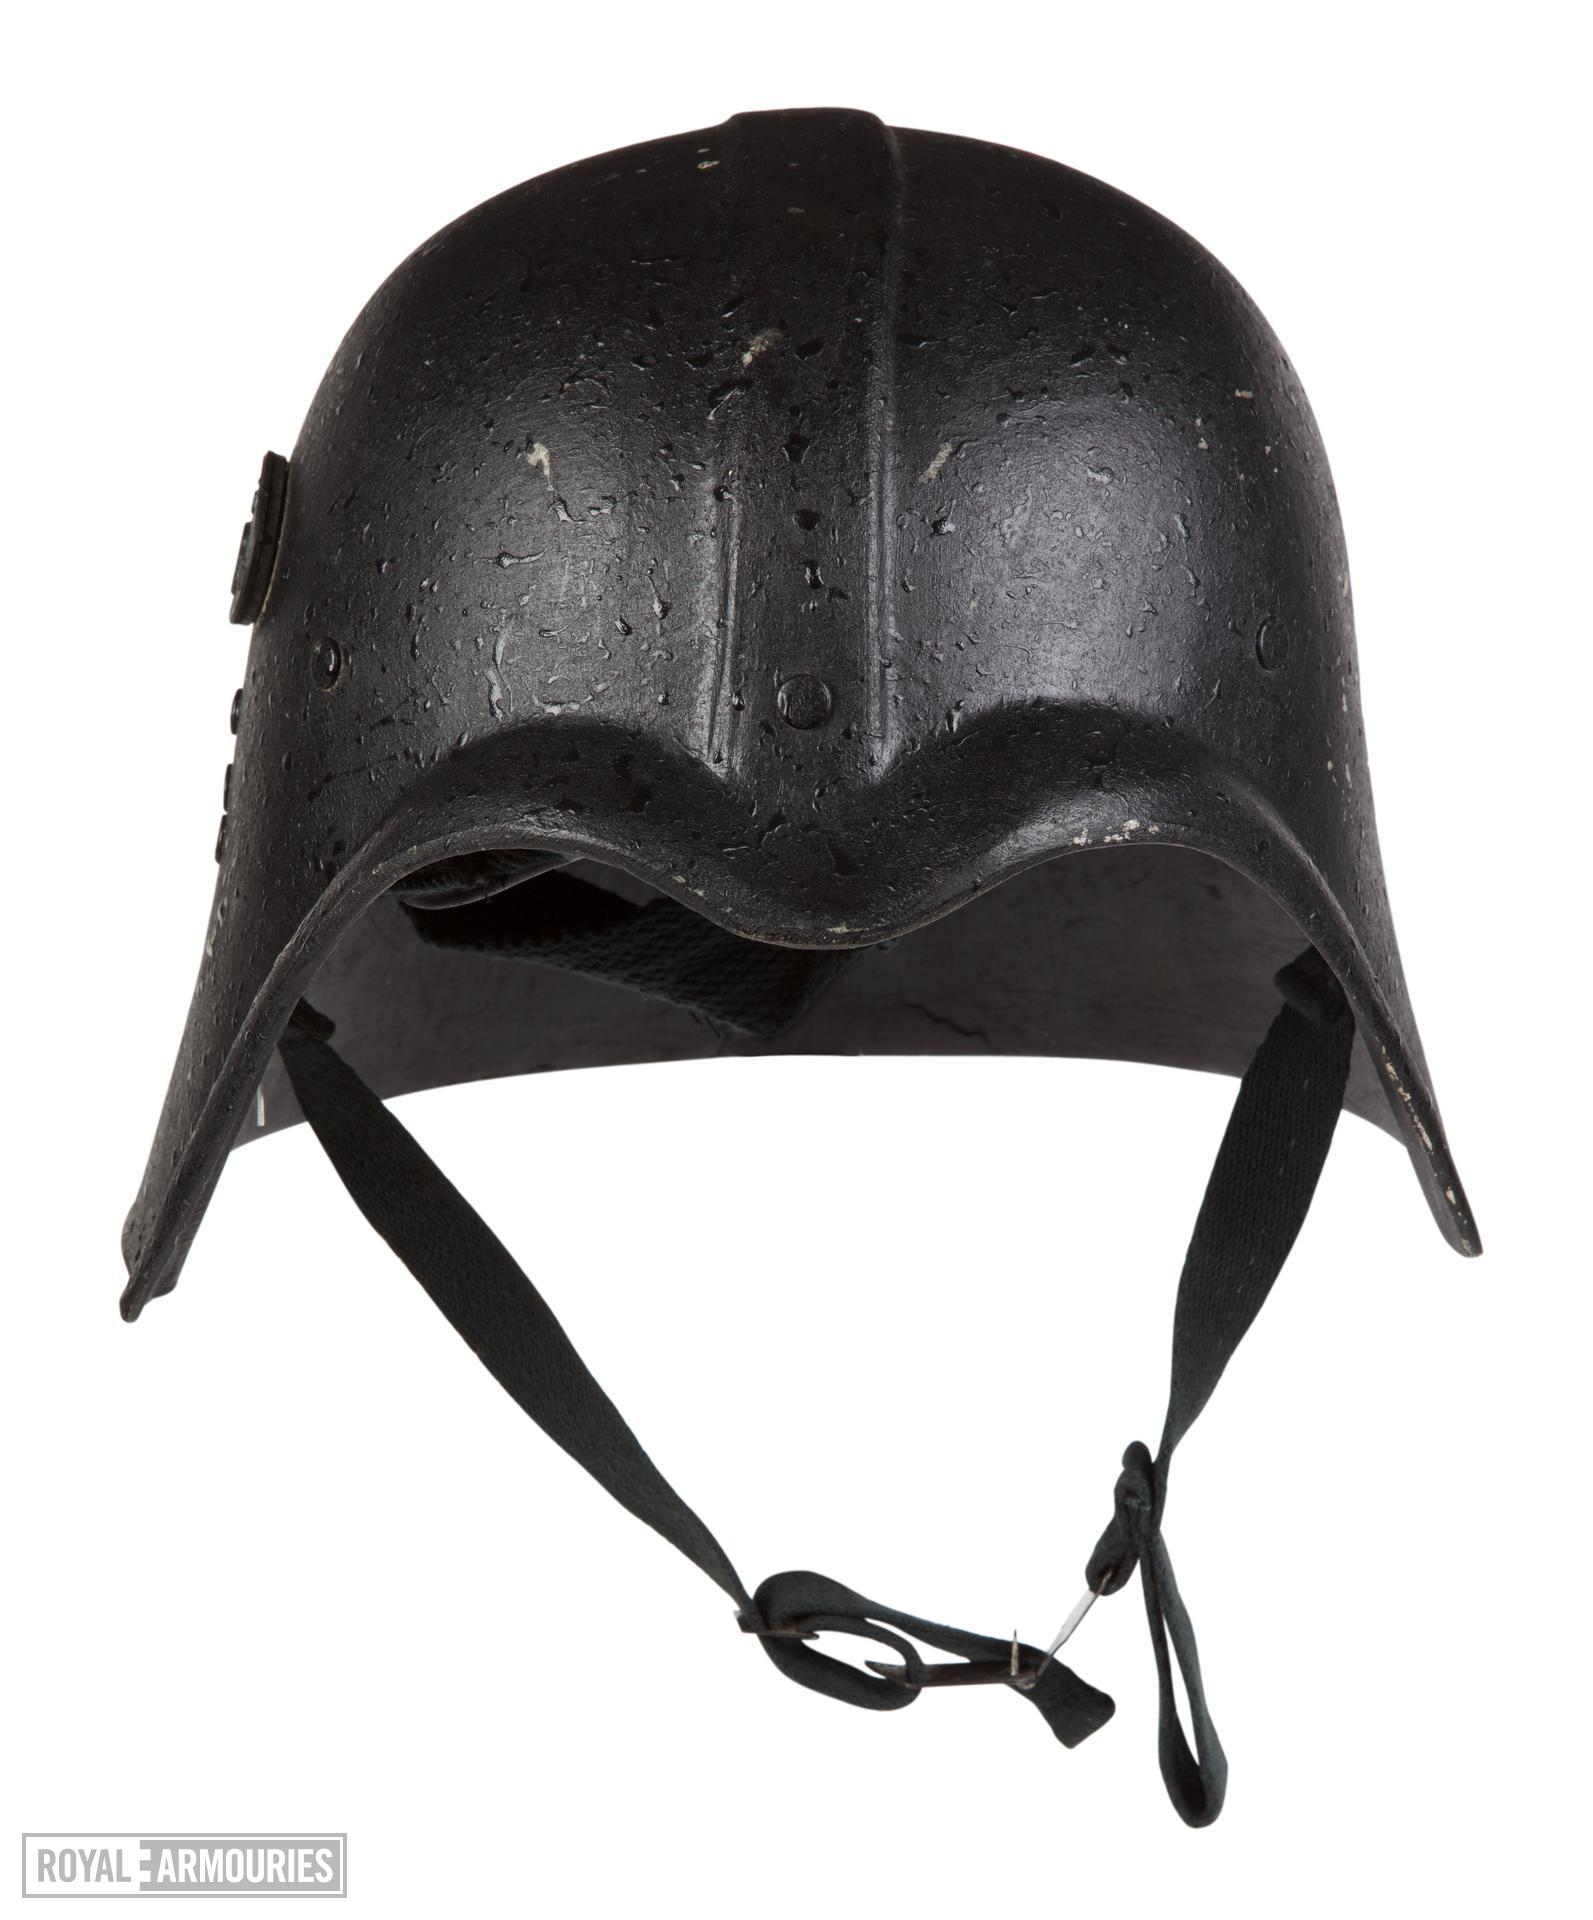 Front view of helmet for Fedayeen Saddam, Iraq, about 1995 (IV.2059)